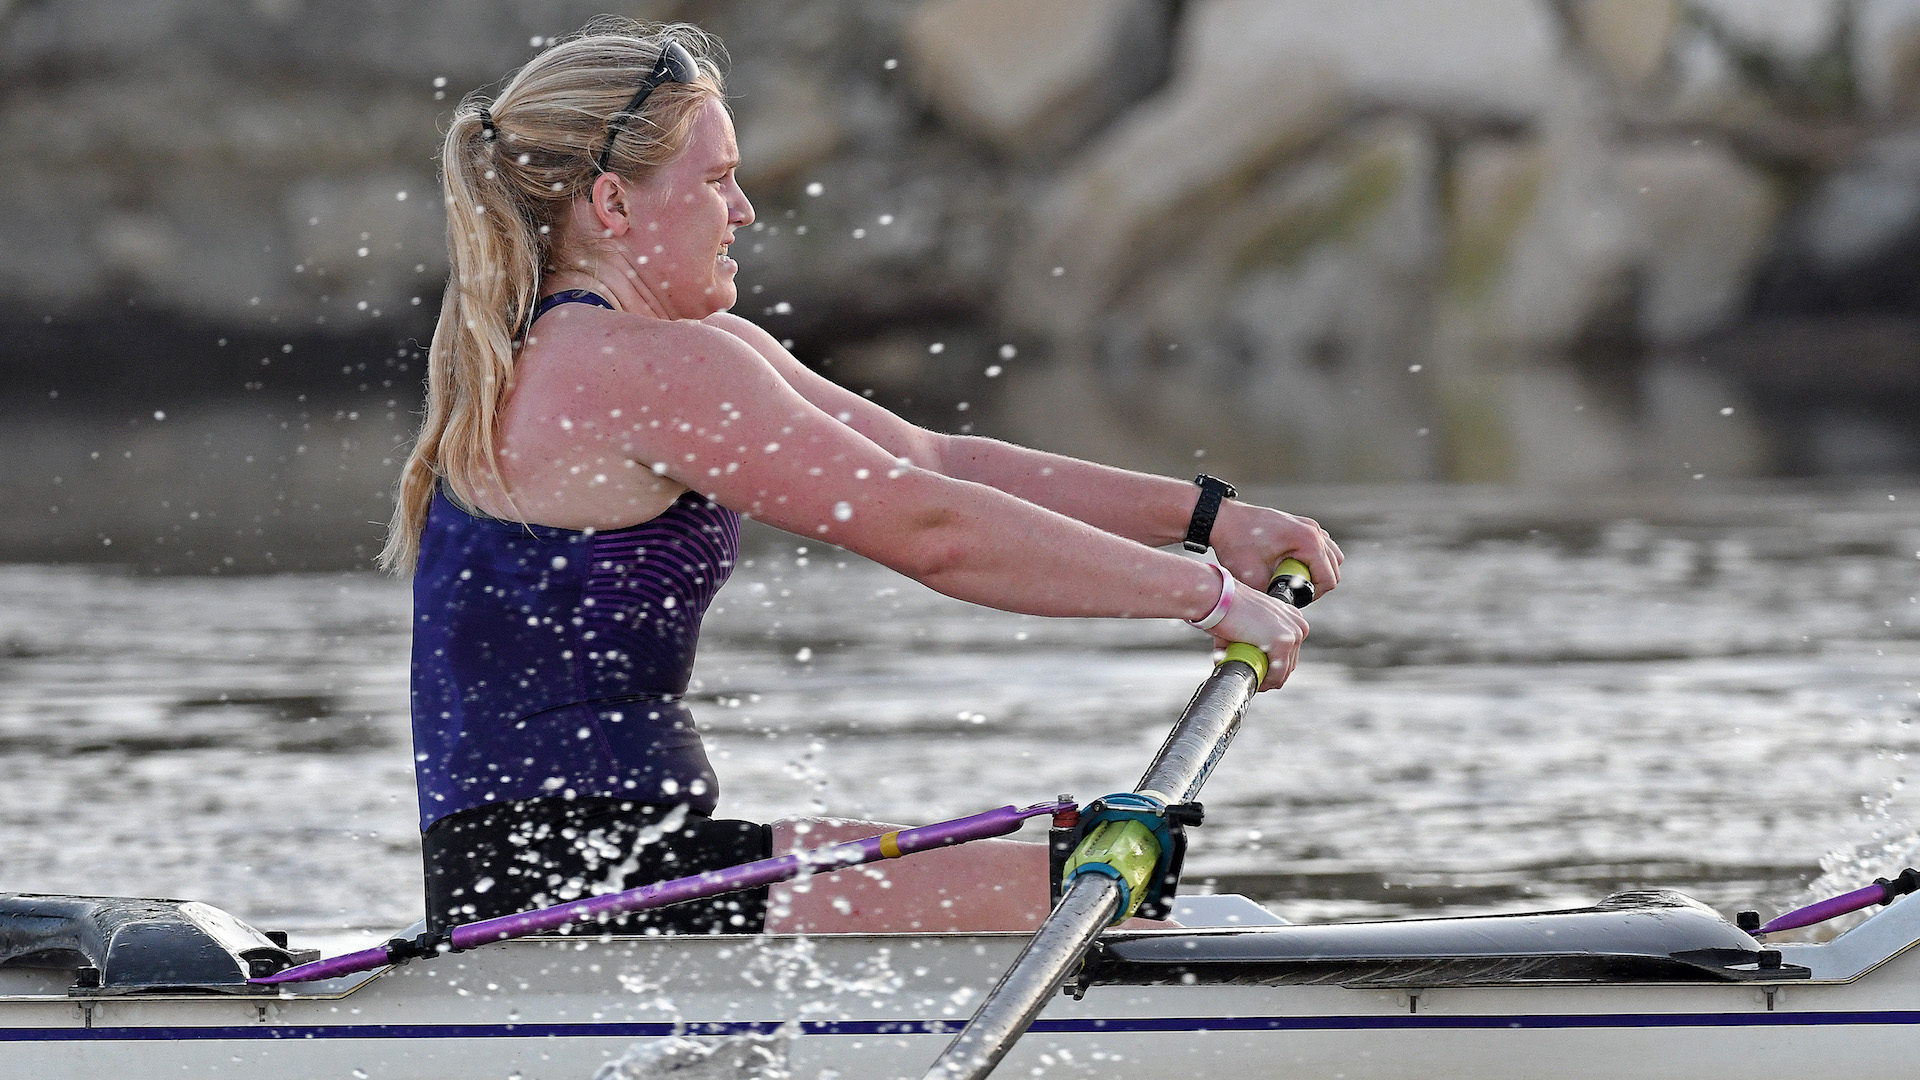 SE: Nuclear Engineering Ph D  Student, K-State Rowing Senior